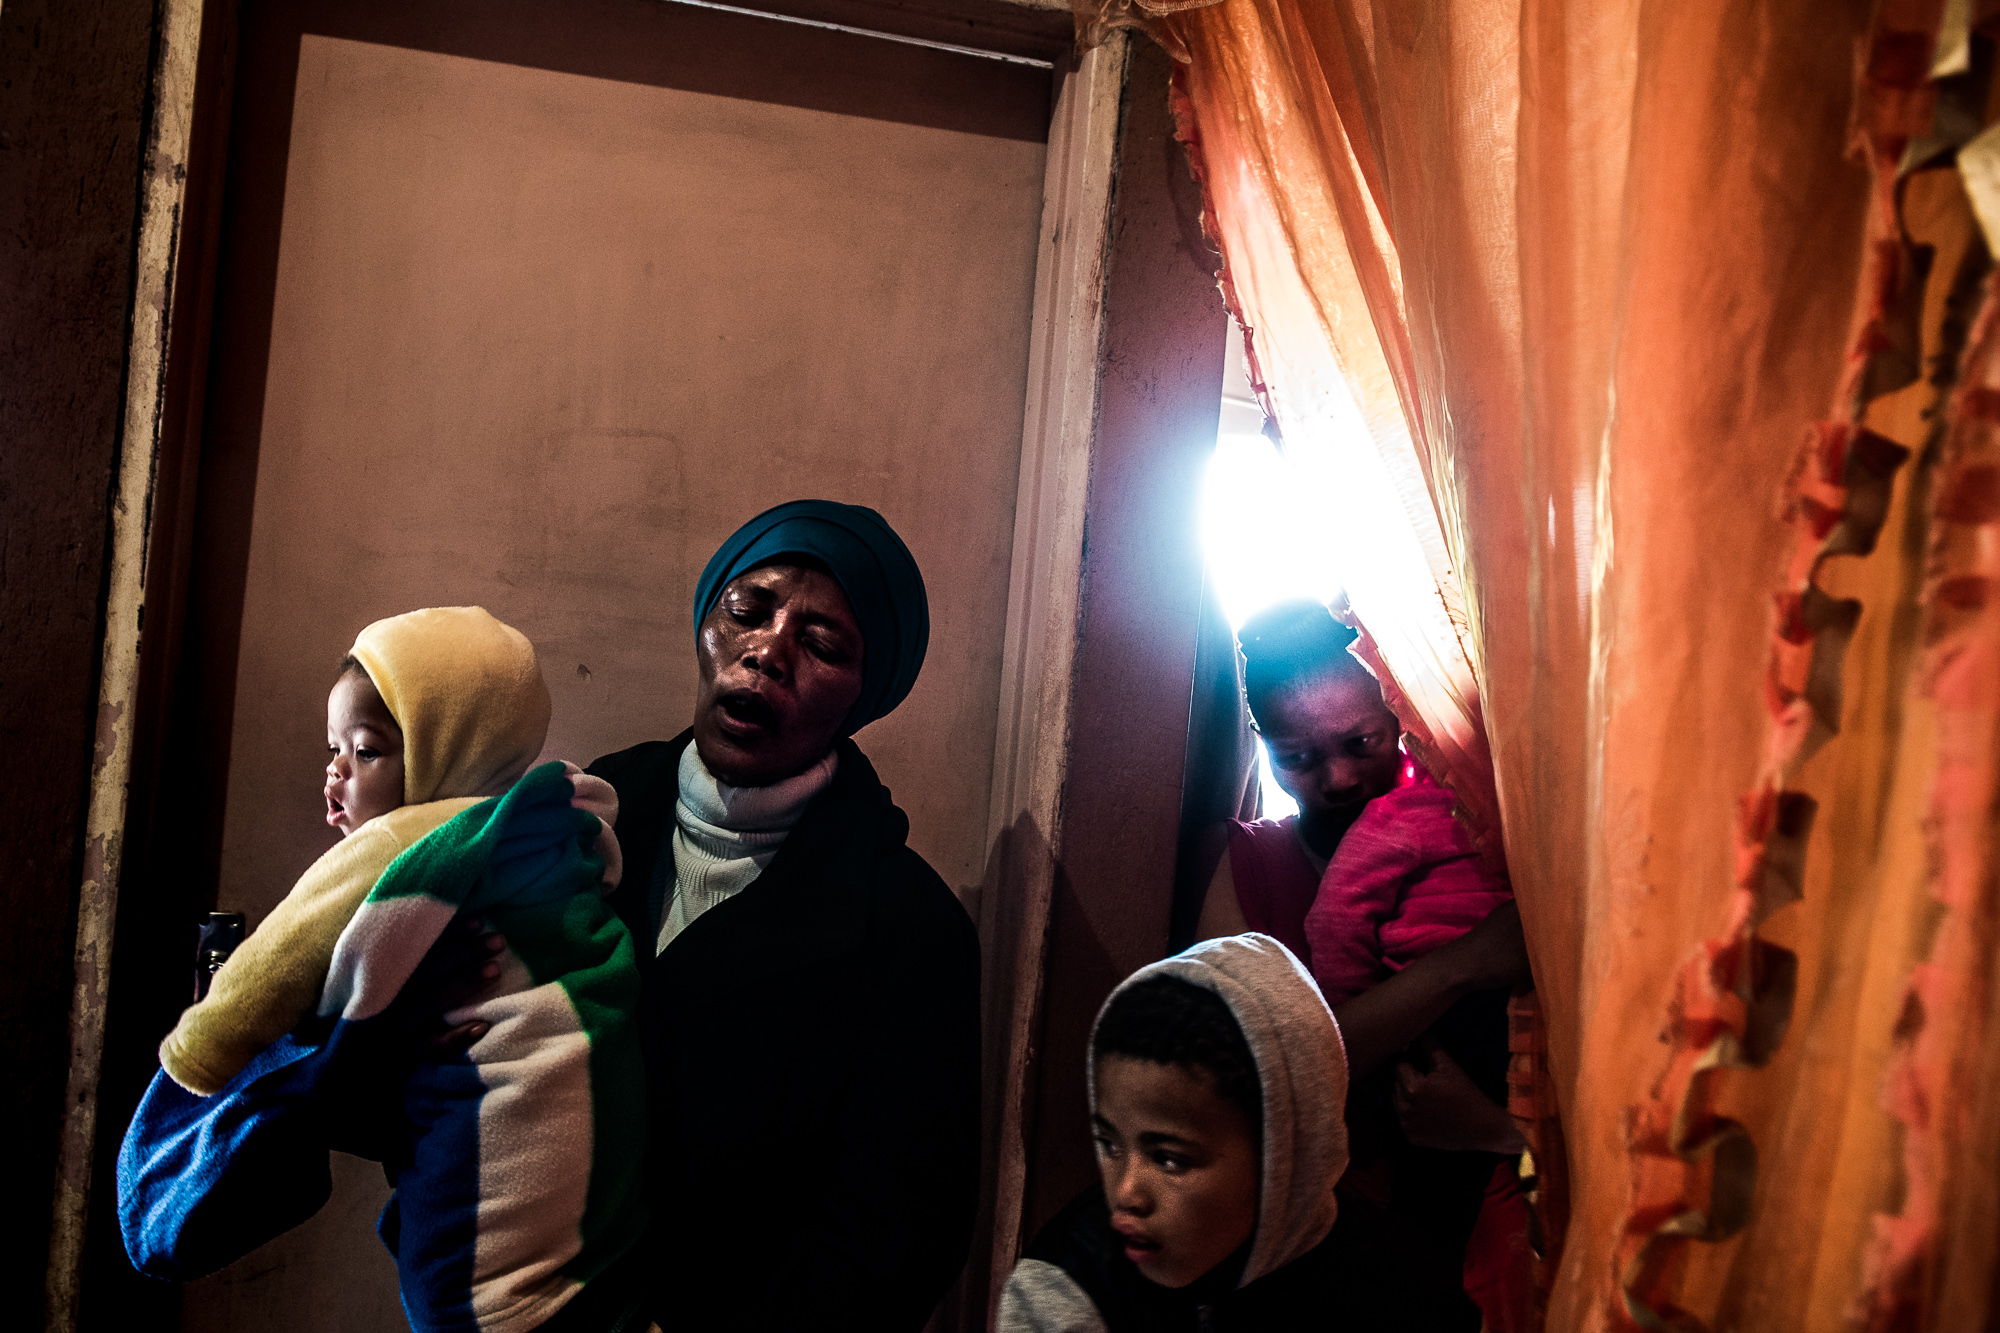 South Africa, Petrusville, 04.08.2018 // Vanessa (18), the daughter of a farmworker, died after an accident on the road. Family and friends sing during the presentation of the body in the squattercamp of Petrusville, Northern Cape. // Lucas Bäuml